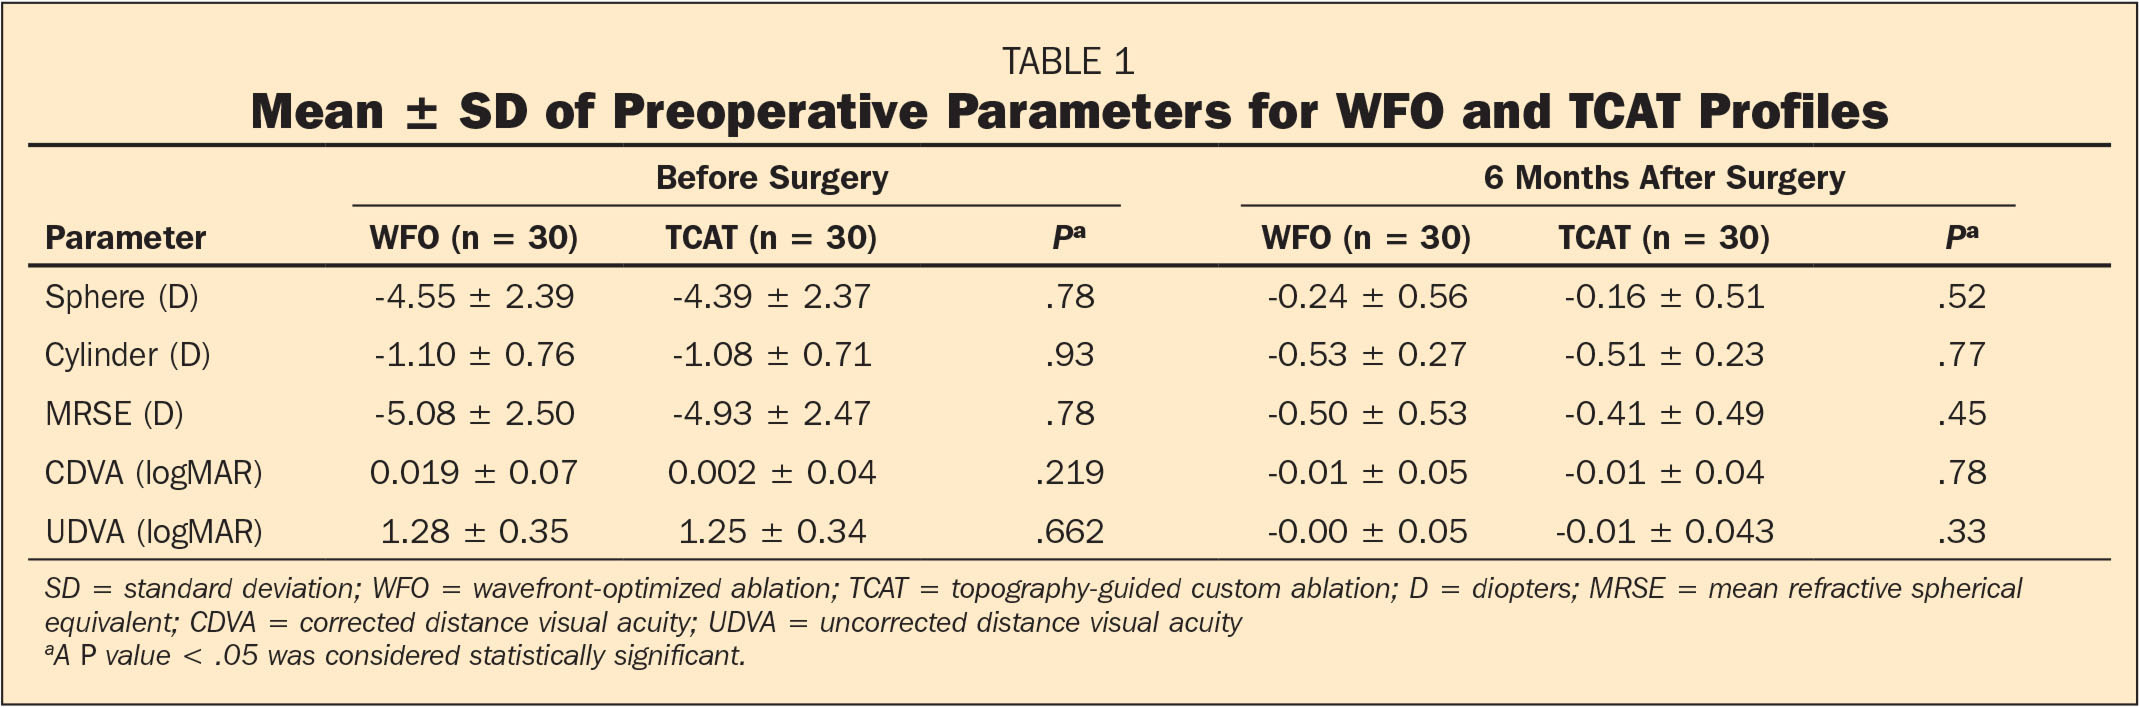 Mean ± SD of Preoperative Parameters for WFO and TCAT Profiles